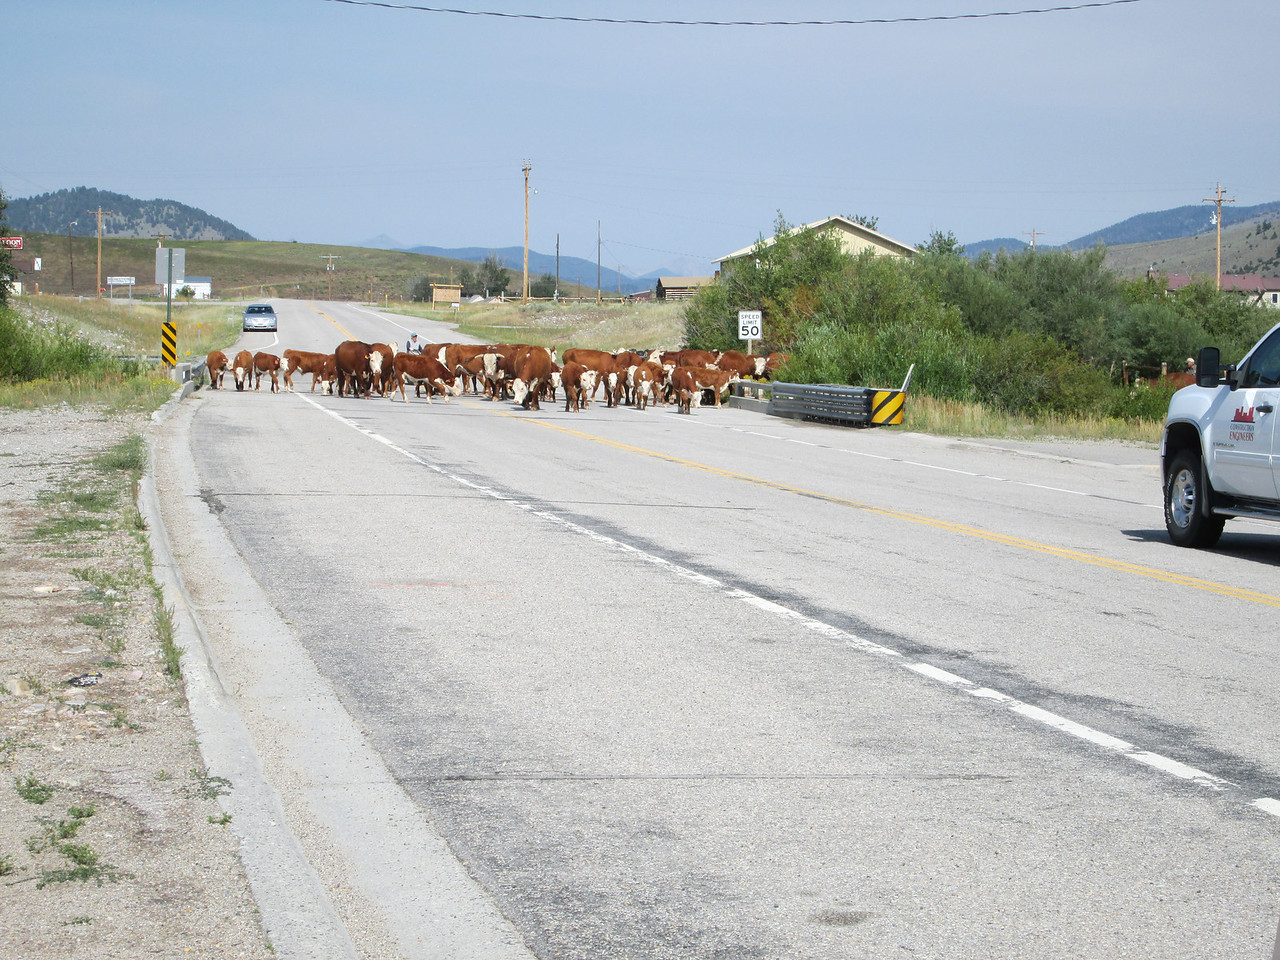 20130813 Cattle Drive in Wise River